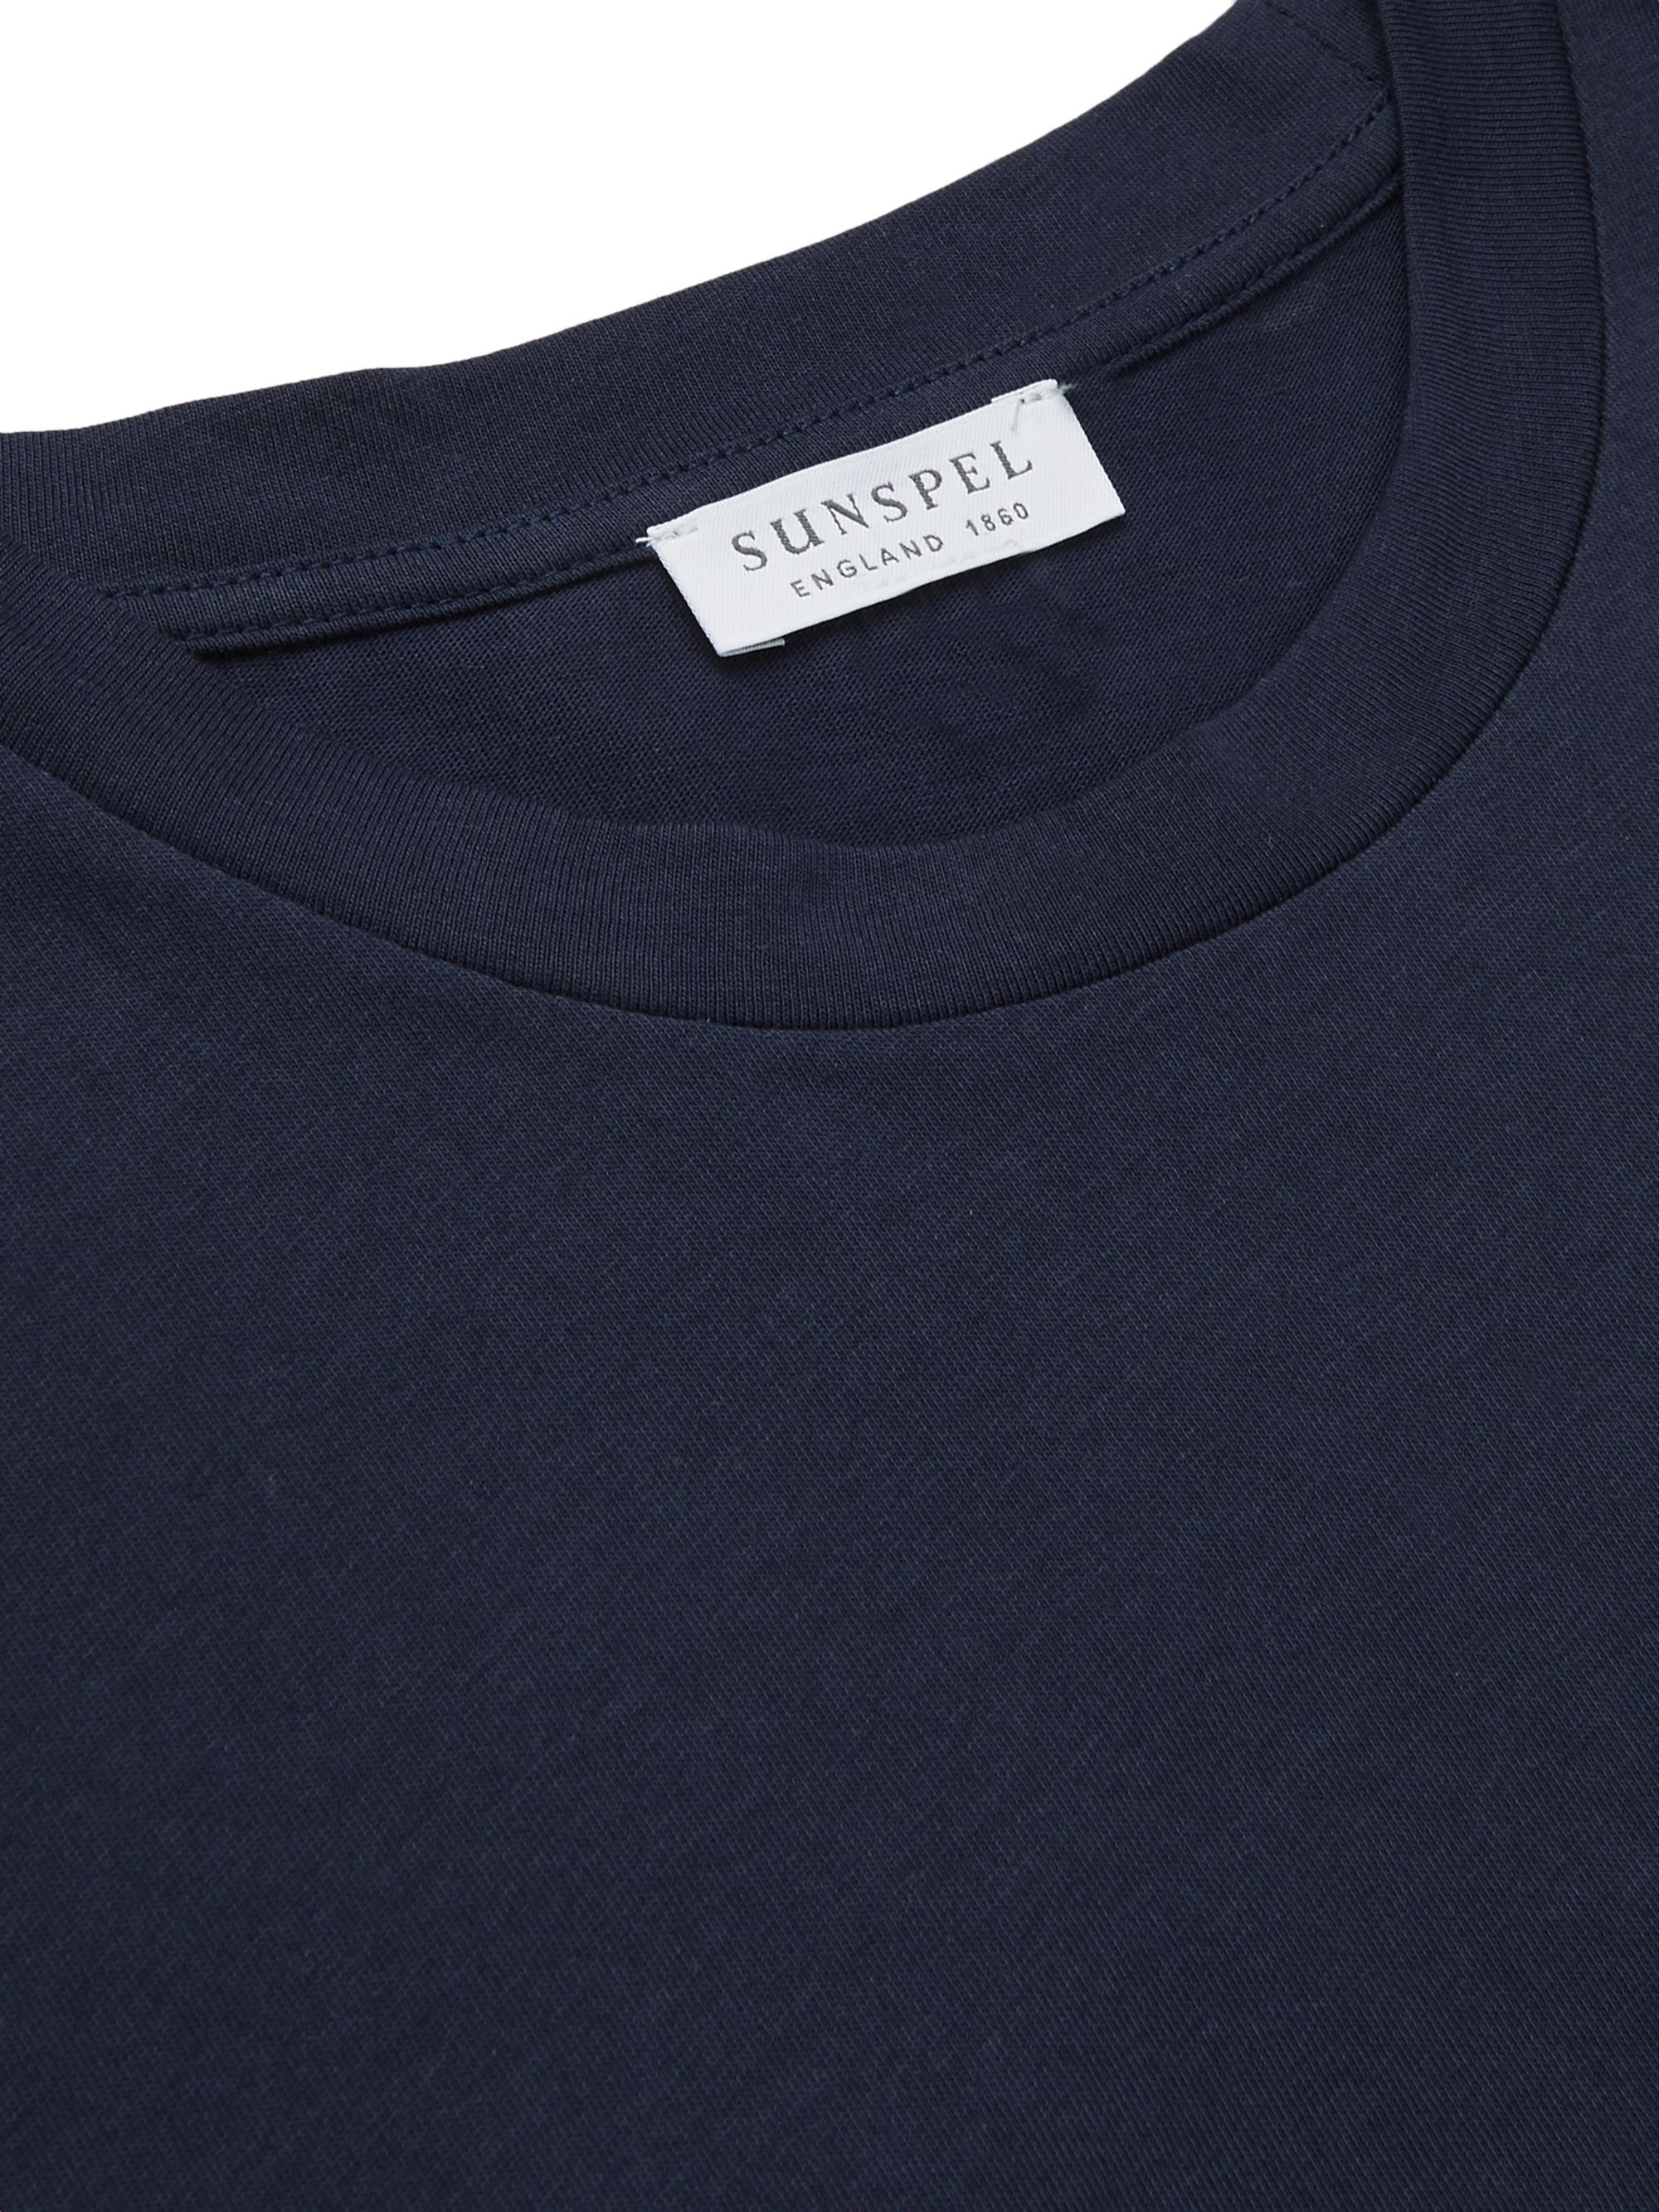 Sunspel Printed Cotton-Jersey T-Shirt